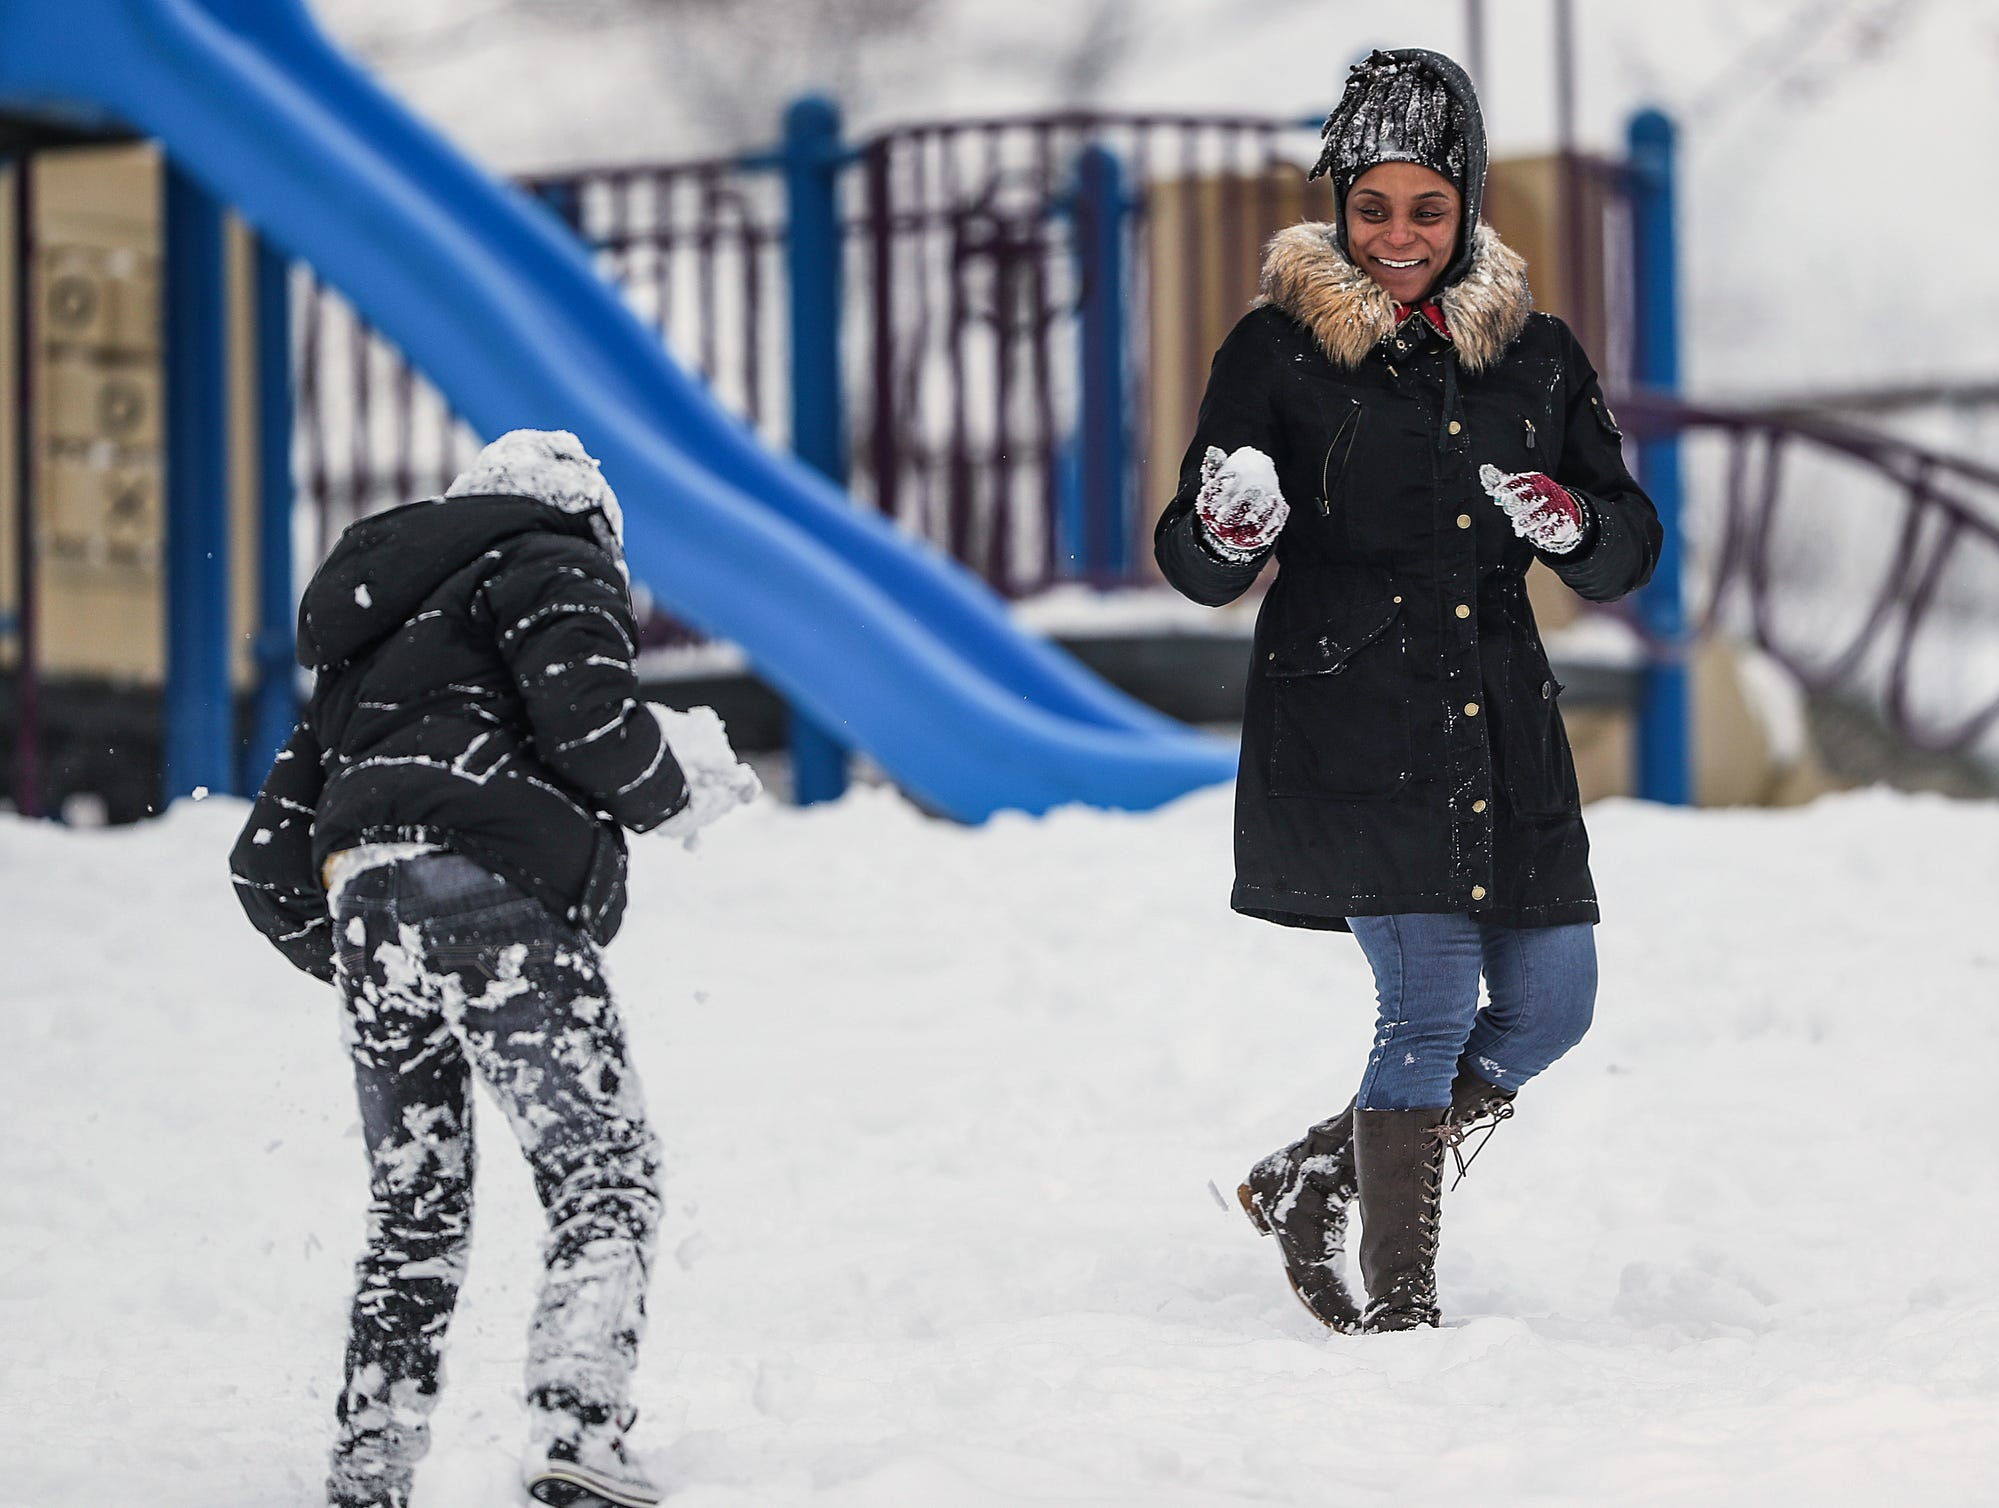 From left, Julian Linton, 8, and his mother Jilliane Linton have a snowball fight at Ellenberger Park in Indianapolis, Sunday, Jan. 13, 2019 Saturday's storm left Indianapolis blanketed in more than 7 inches of snow.